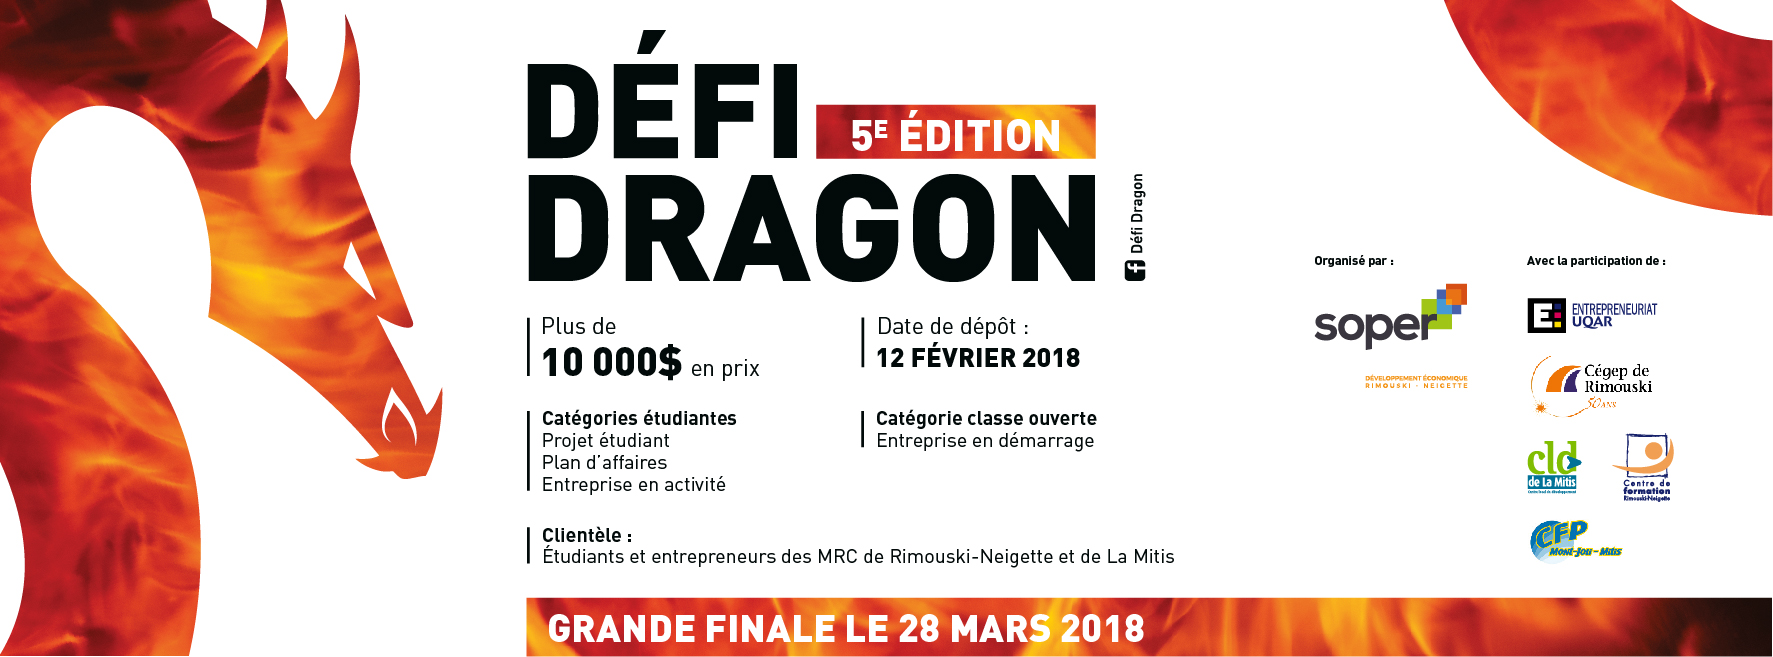 Défi Dragon - Facebook